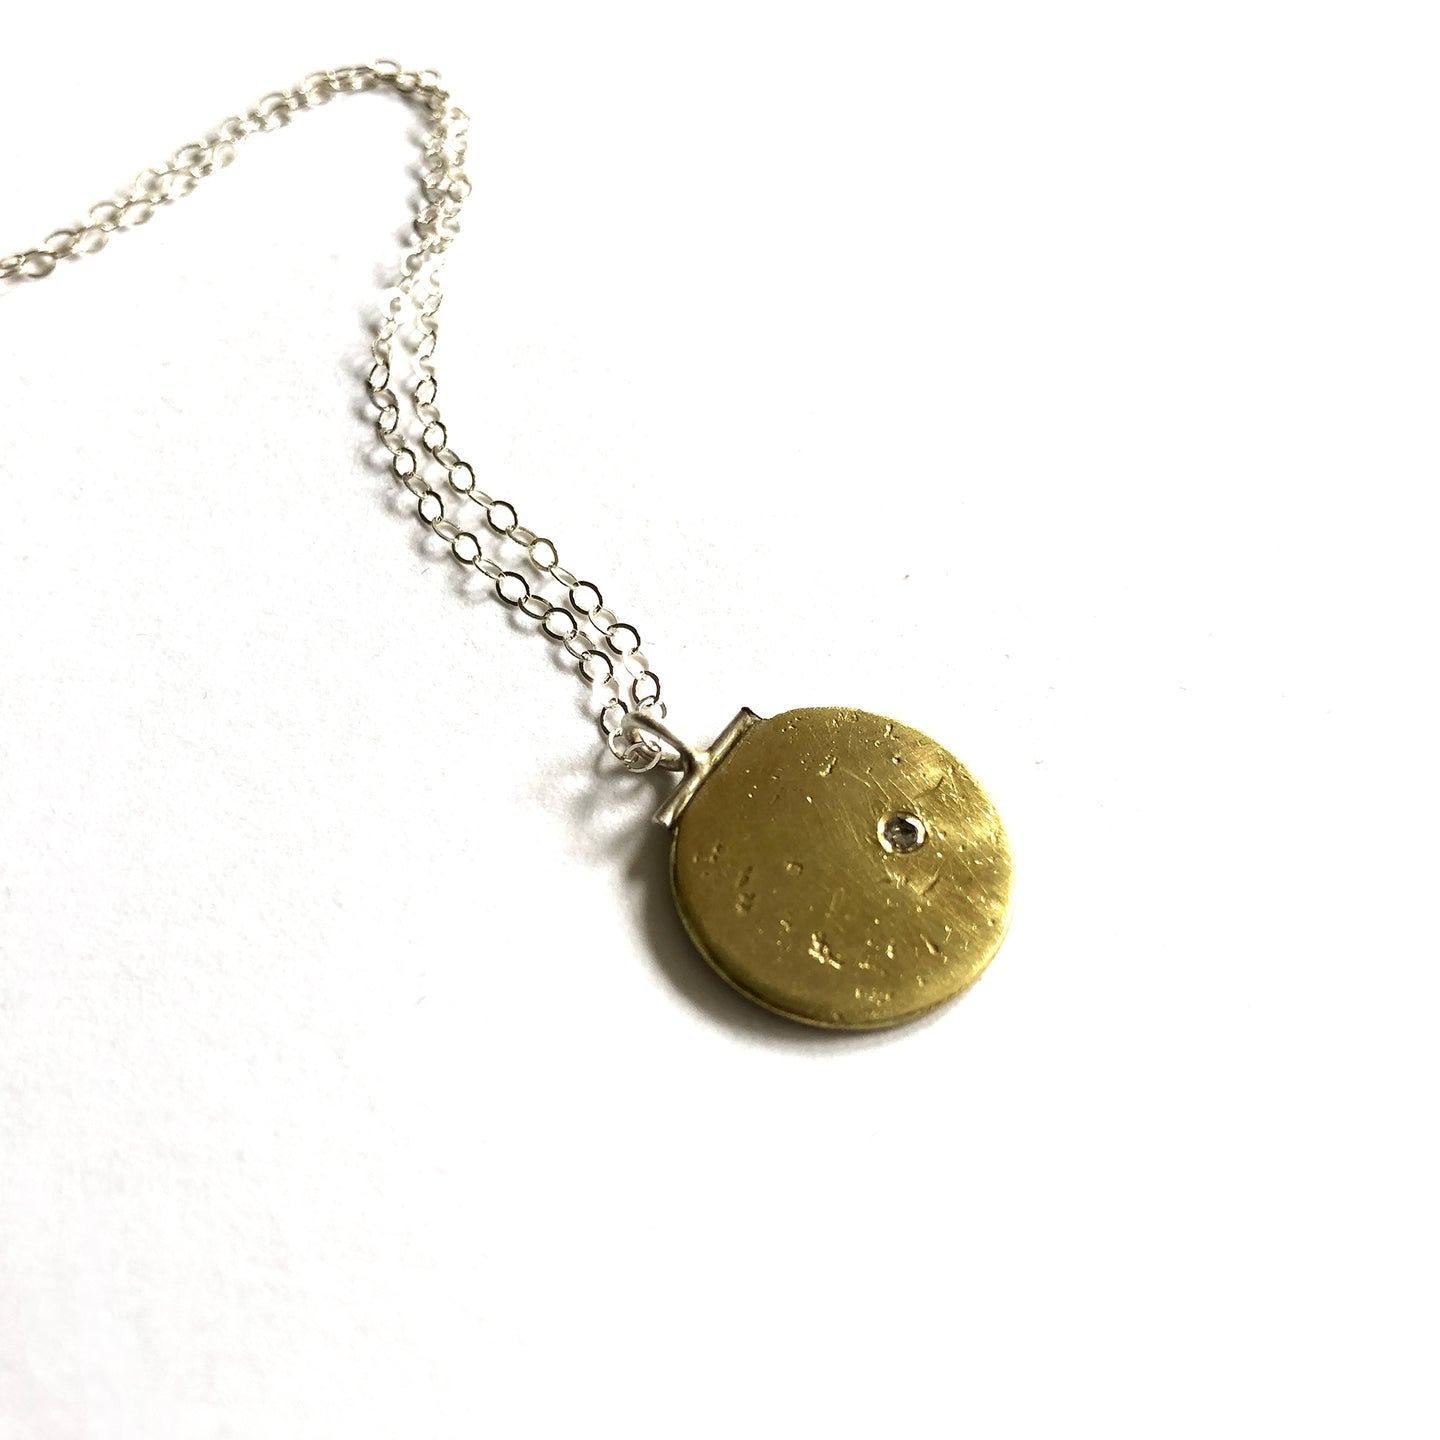 "Eko Wright:(S) Disc necklace with CZ in brass & sterling silver 5/8"" diameter 18"" long"